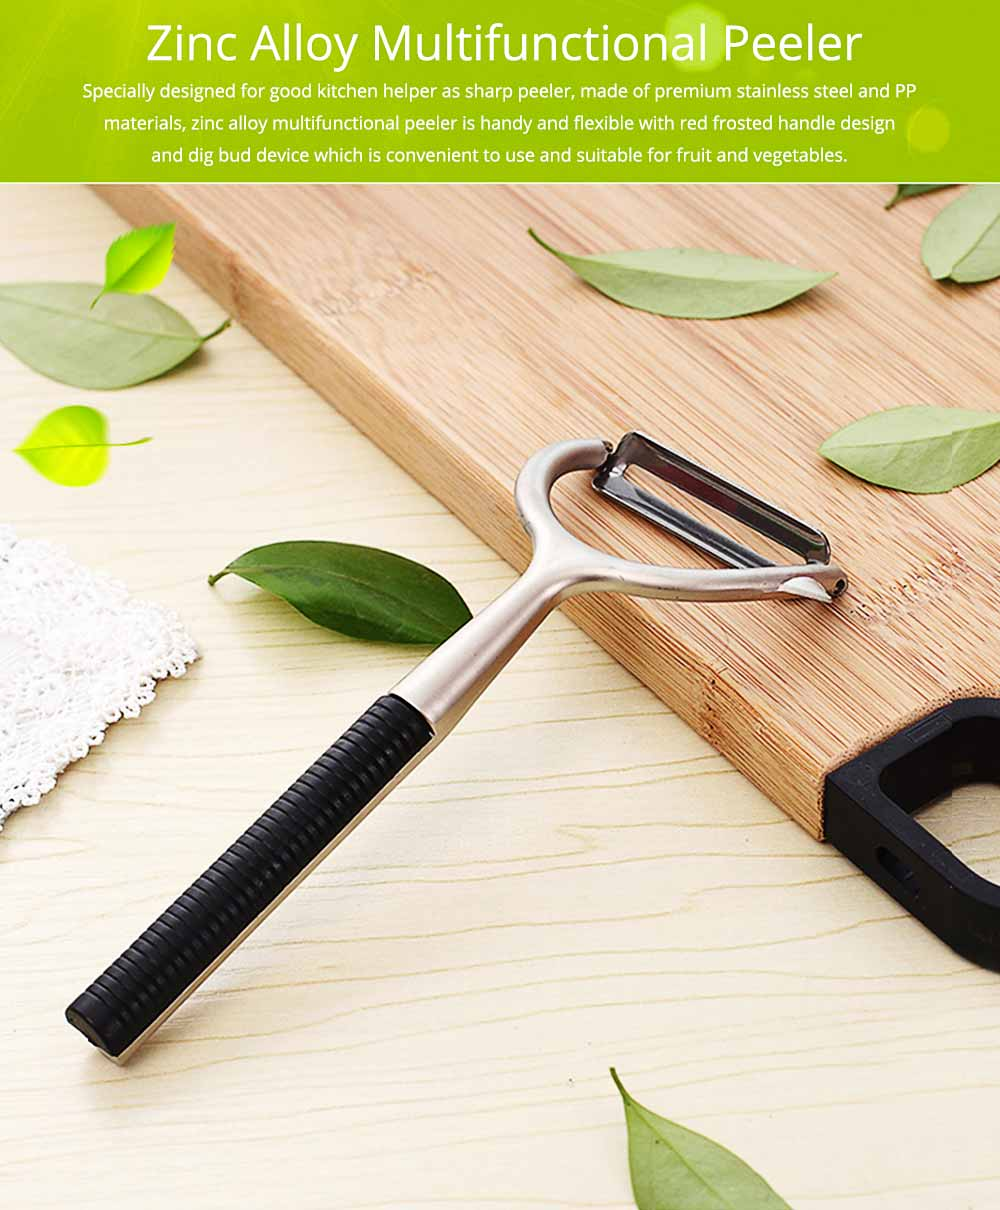 Zinc Alloy Multifunctional Peeler Knife, Portable Vegetable Potato Fruit Peeler, Kitchen Cut Tools 0